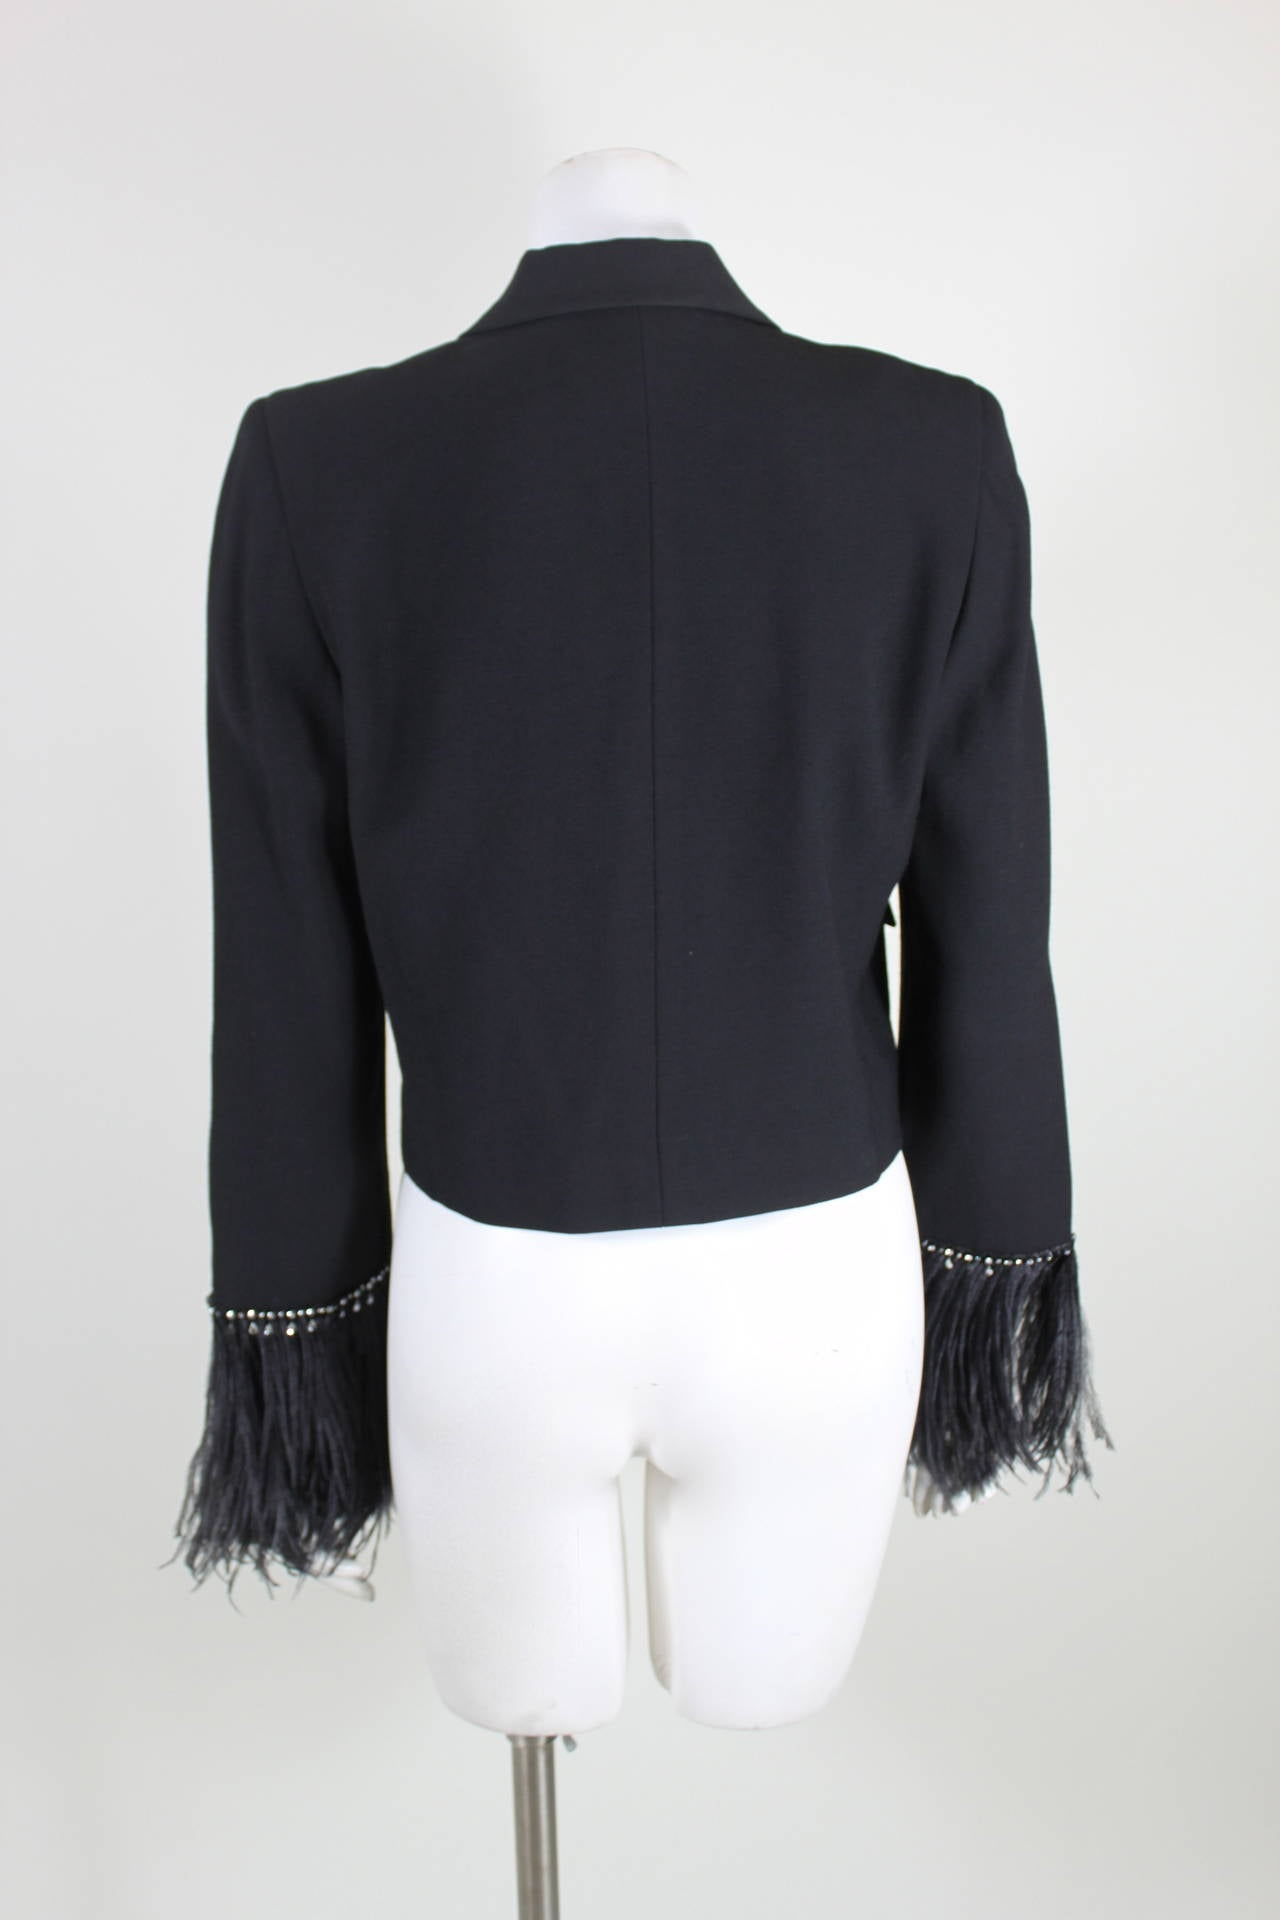 Pierre Cardin 1980s Black Jacket w/ Feather and Rhinestone Sleeves 7